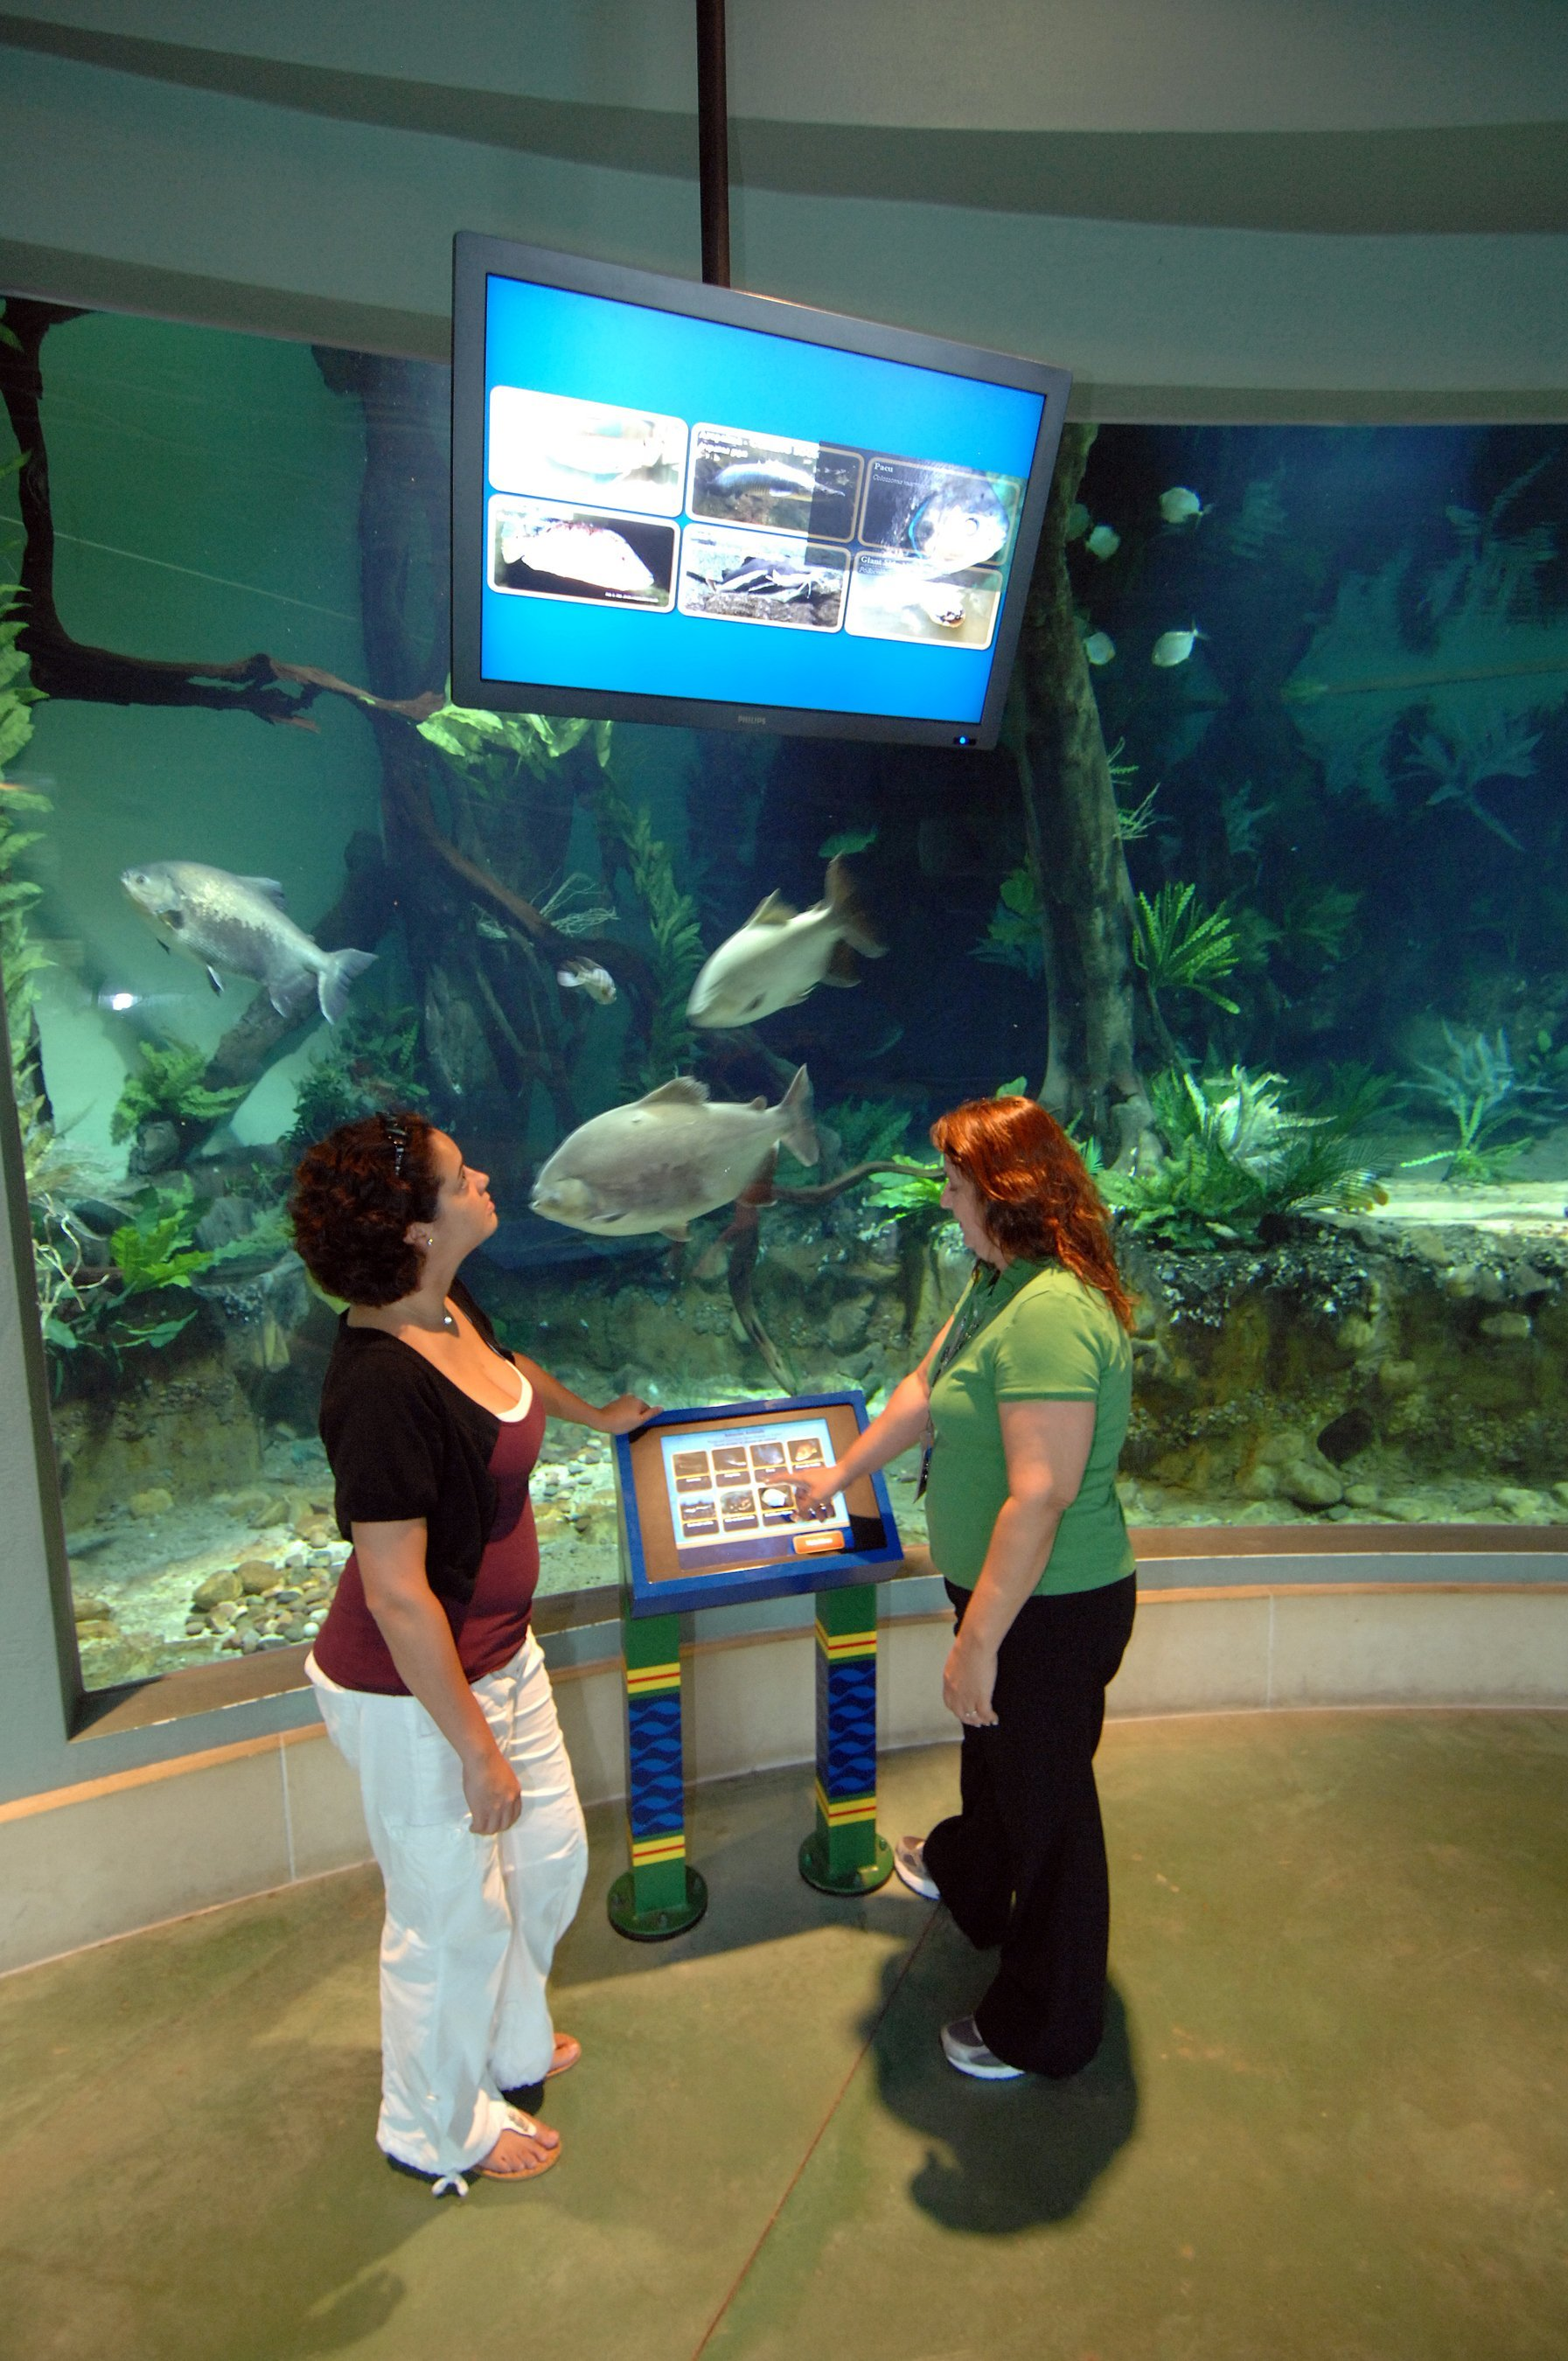 The Magic of High Technology: <br>How Lighting and Sound Immerse Visitors to Zoo and Aquarium Exhibits